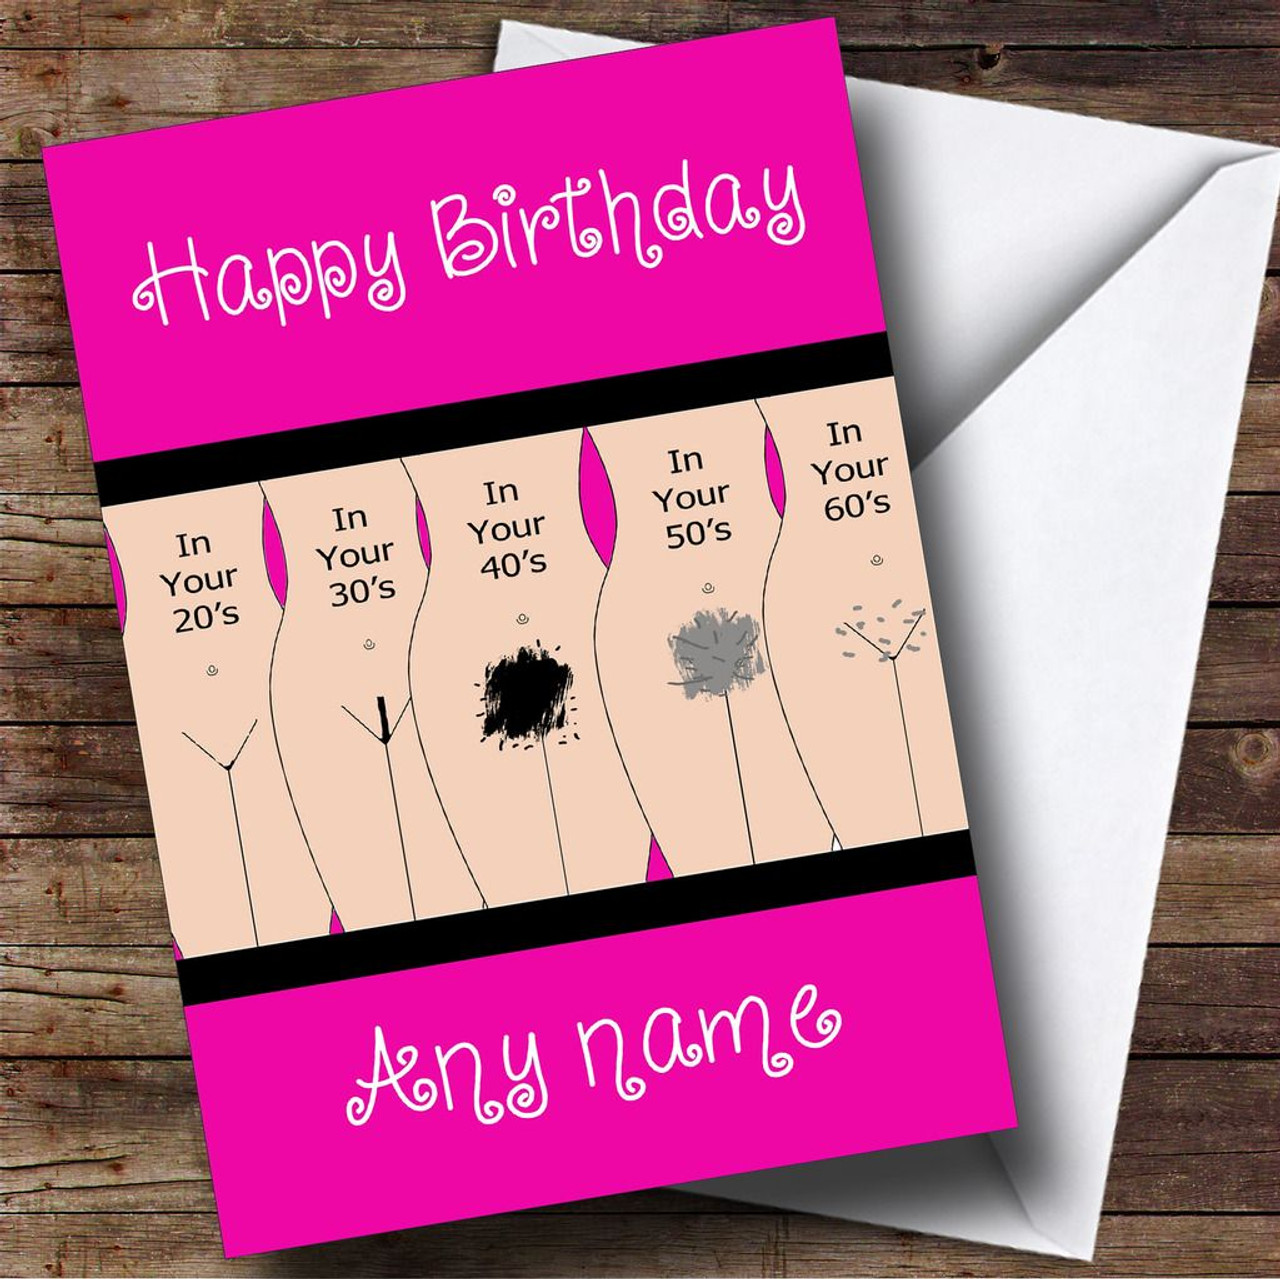 Funny joke getting old pubic hair personalised birthday card the funny joke getting old pubic hair personalised birthday card kristyandbryce Image collections